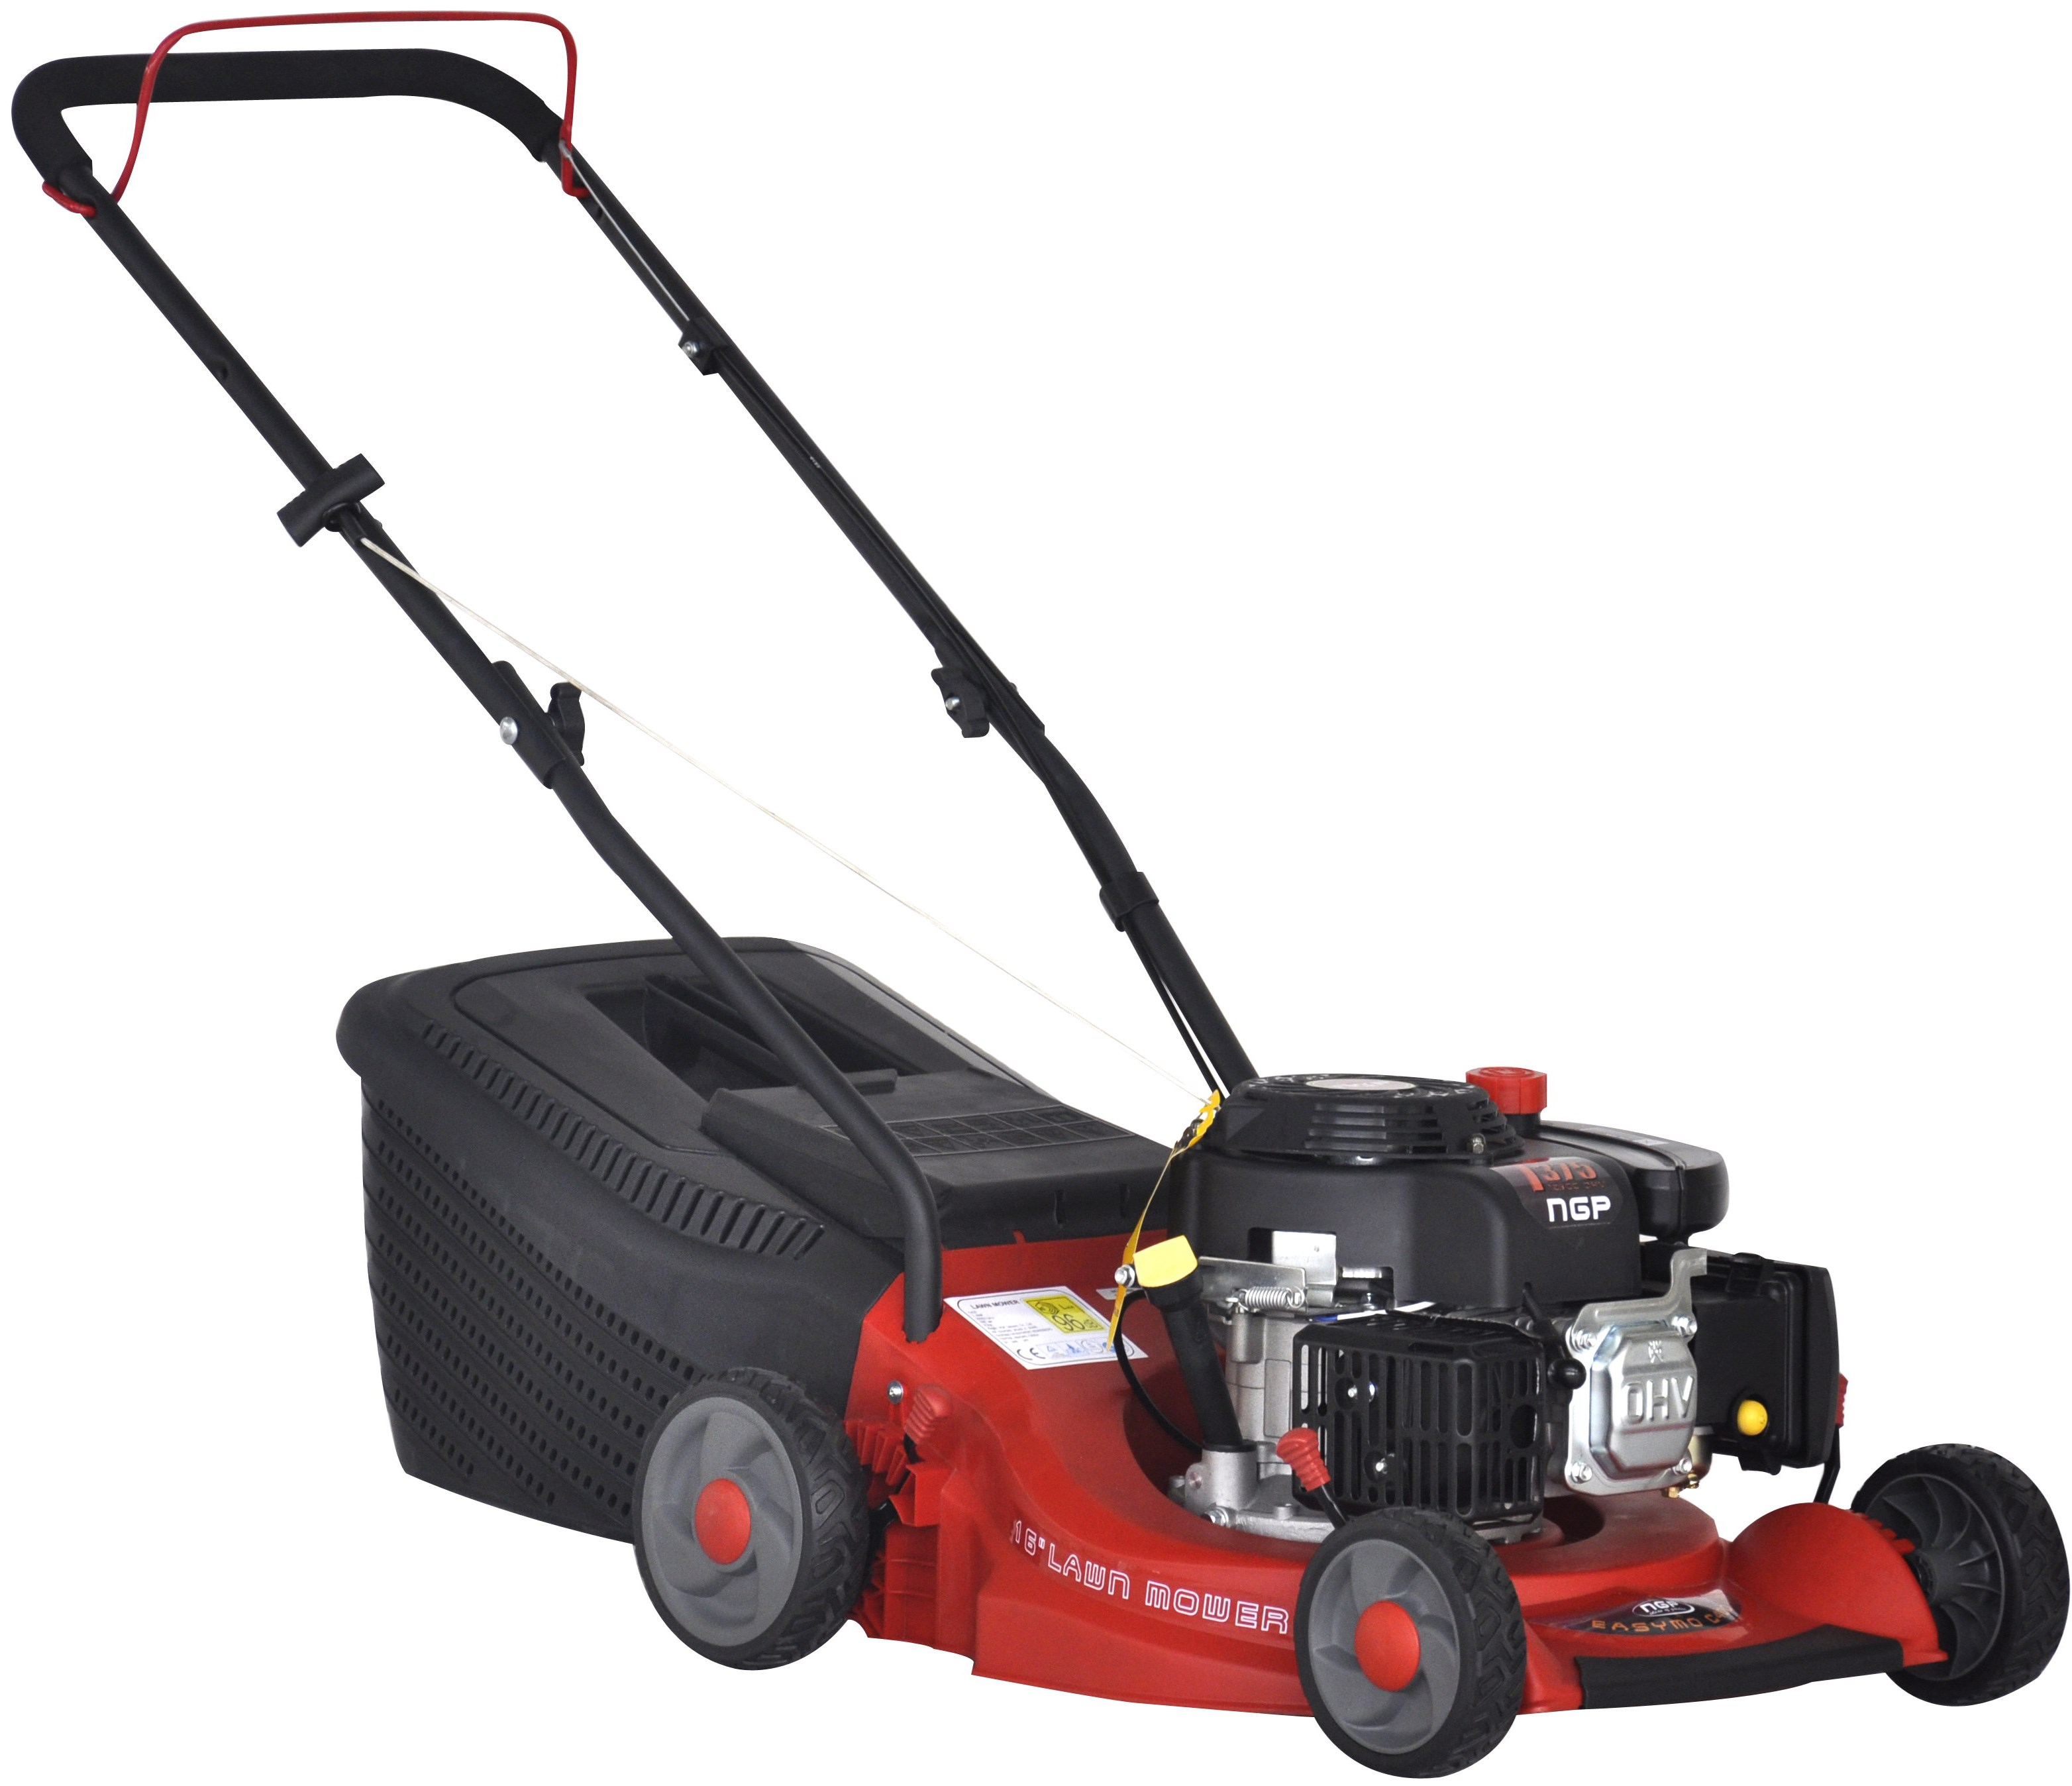 Easymo Poly Deck Push Lawnmower C400i T375 Petrol